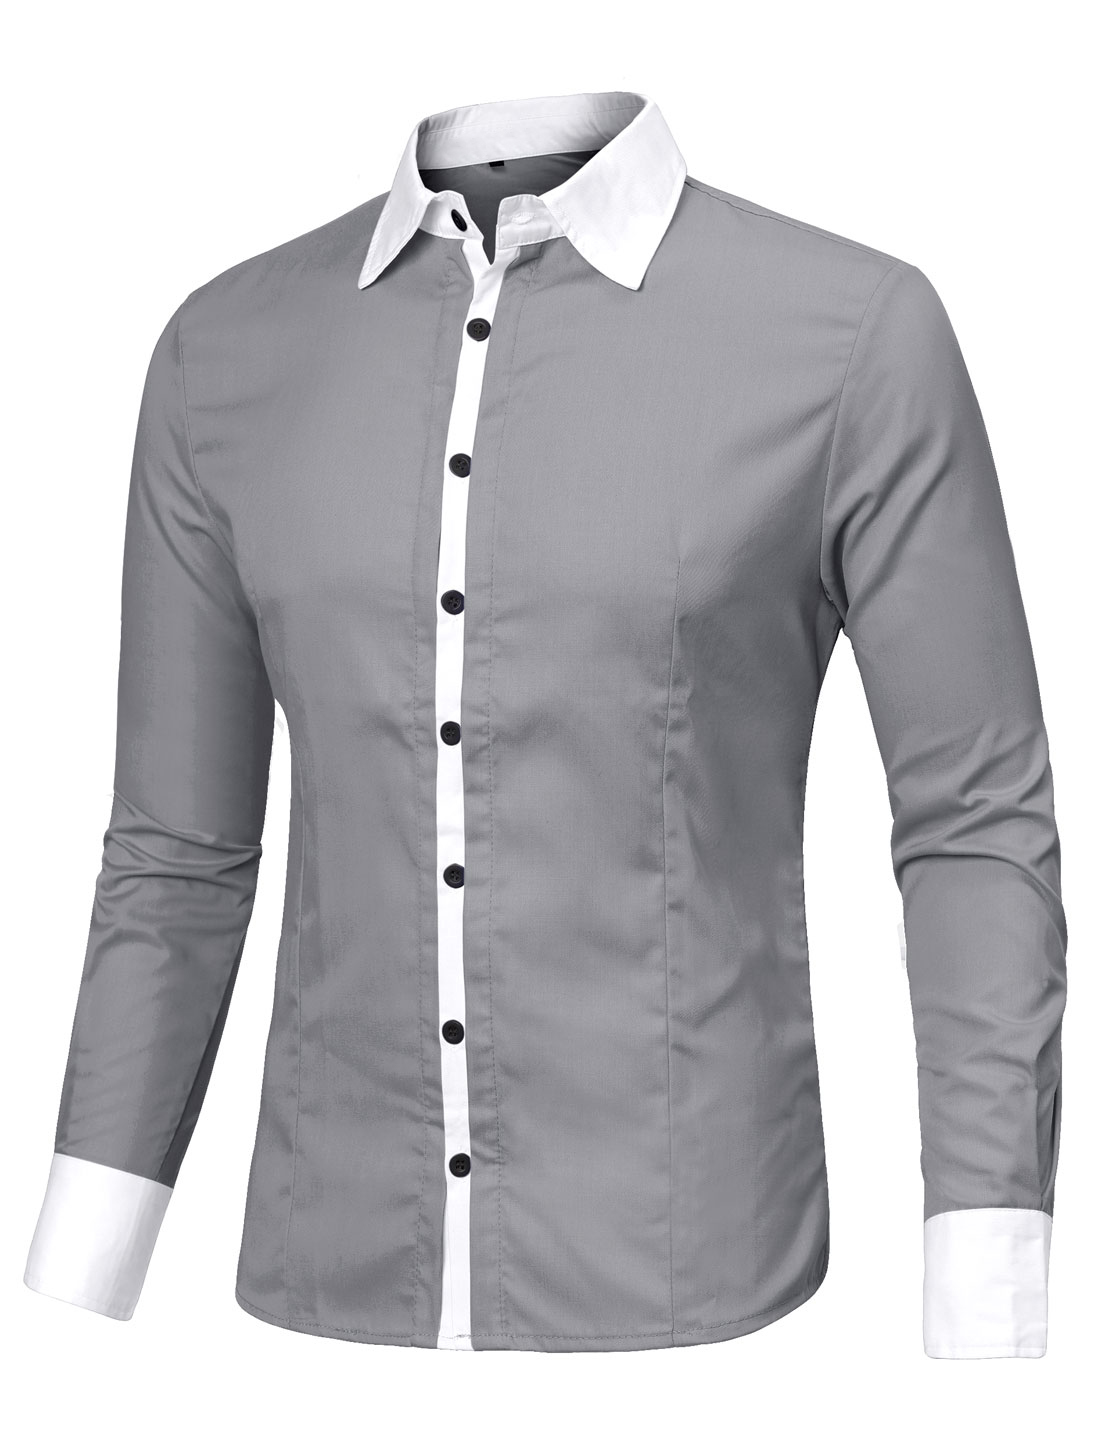 Men Long-Sleeved Round Hem Slim Fit Shirt Light Gray S